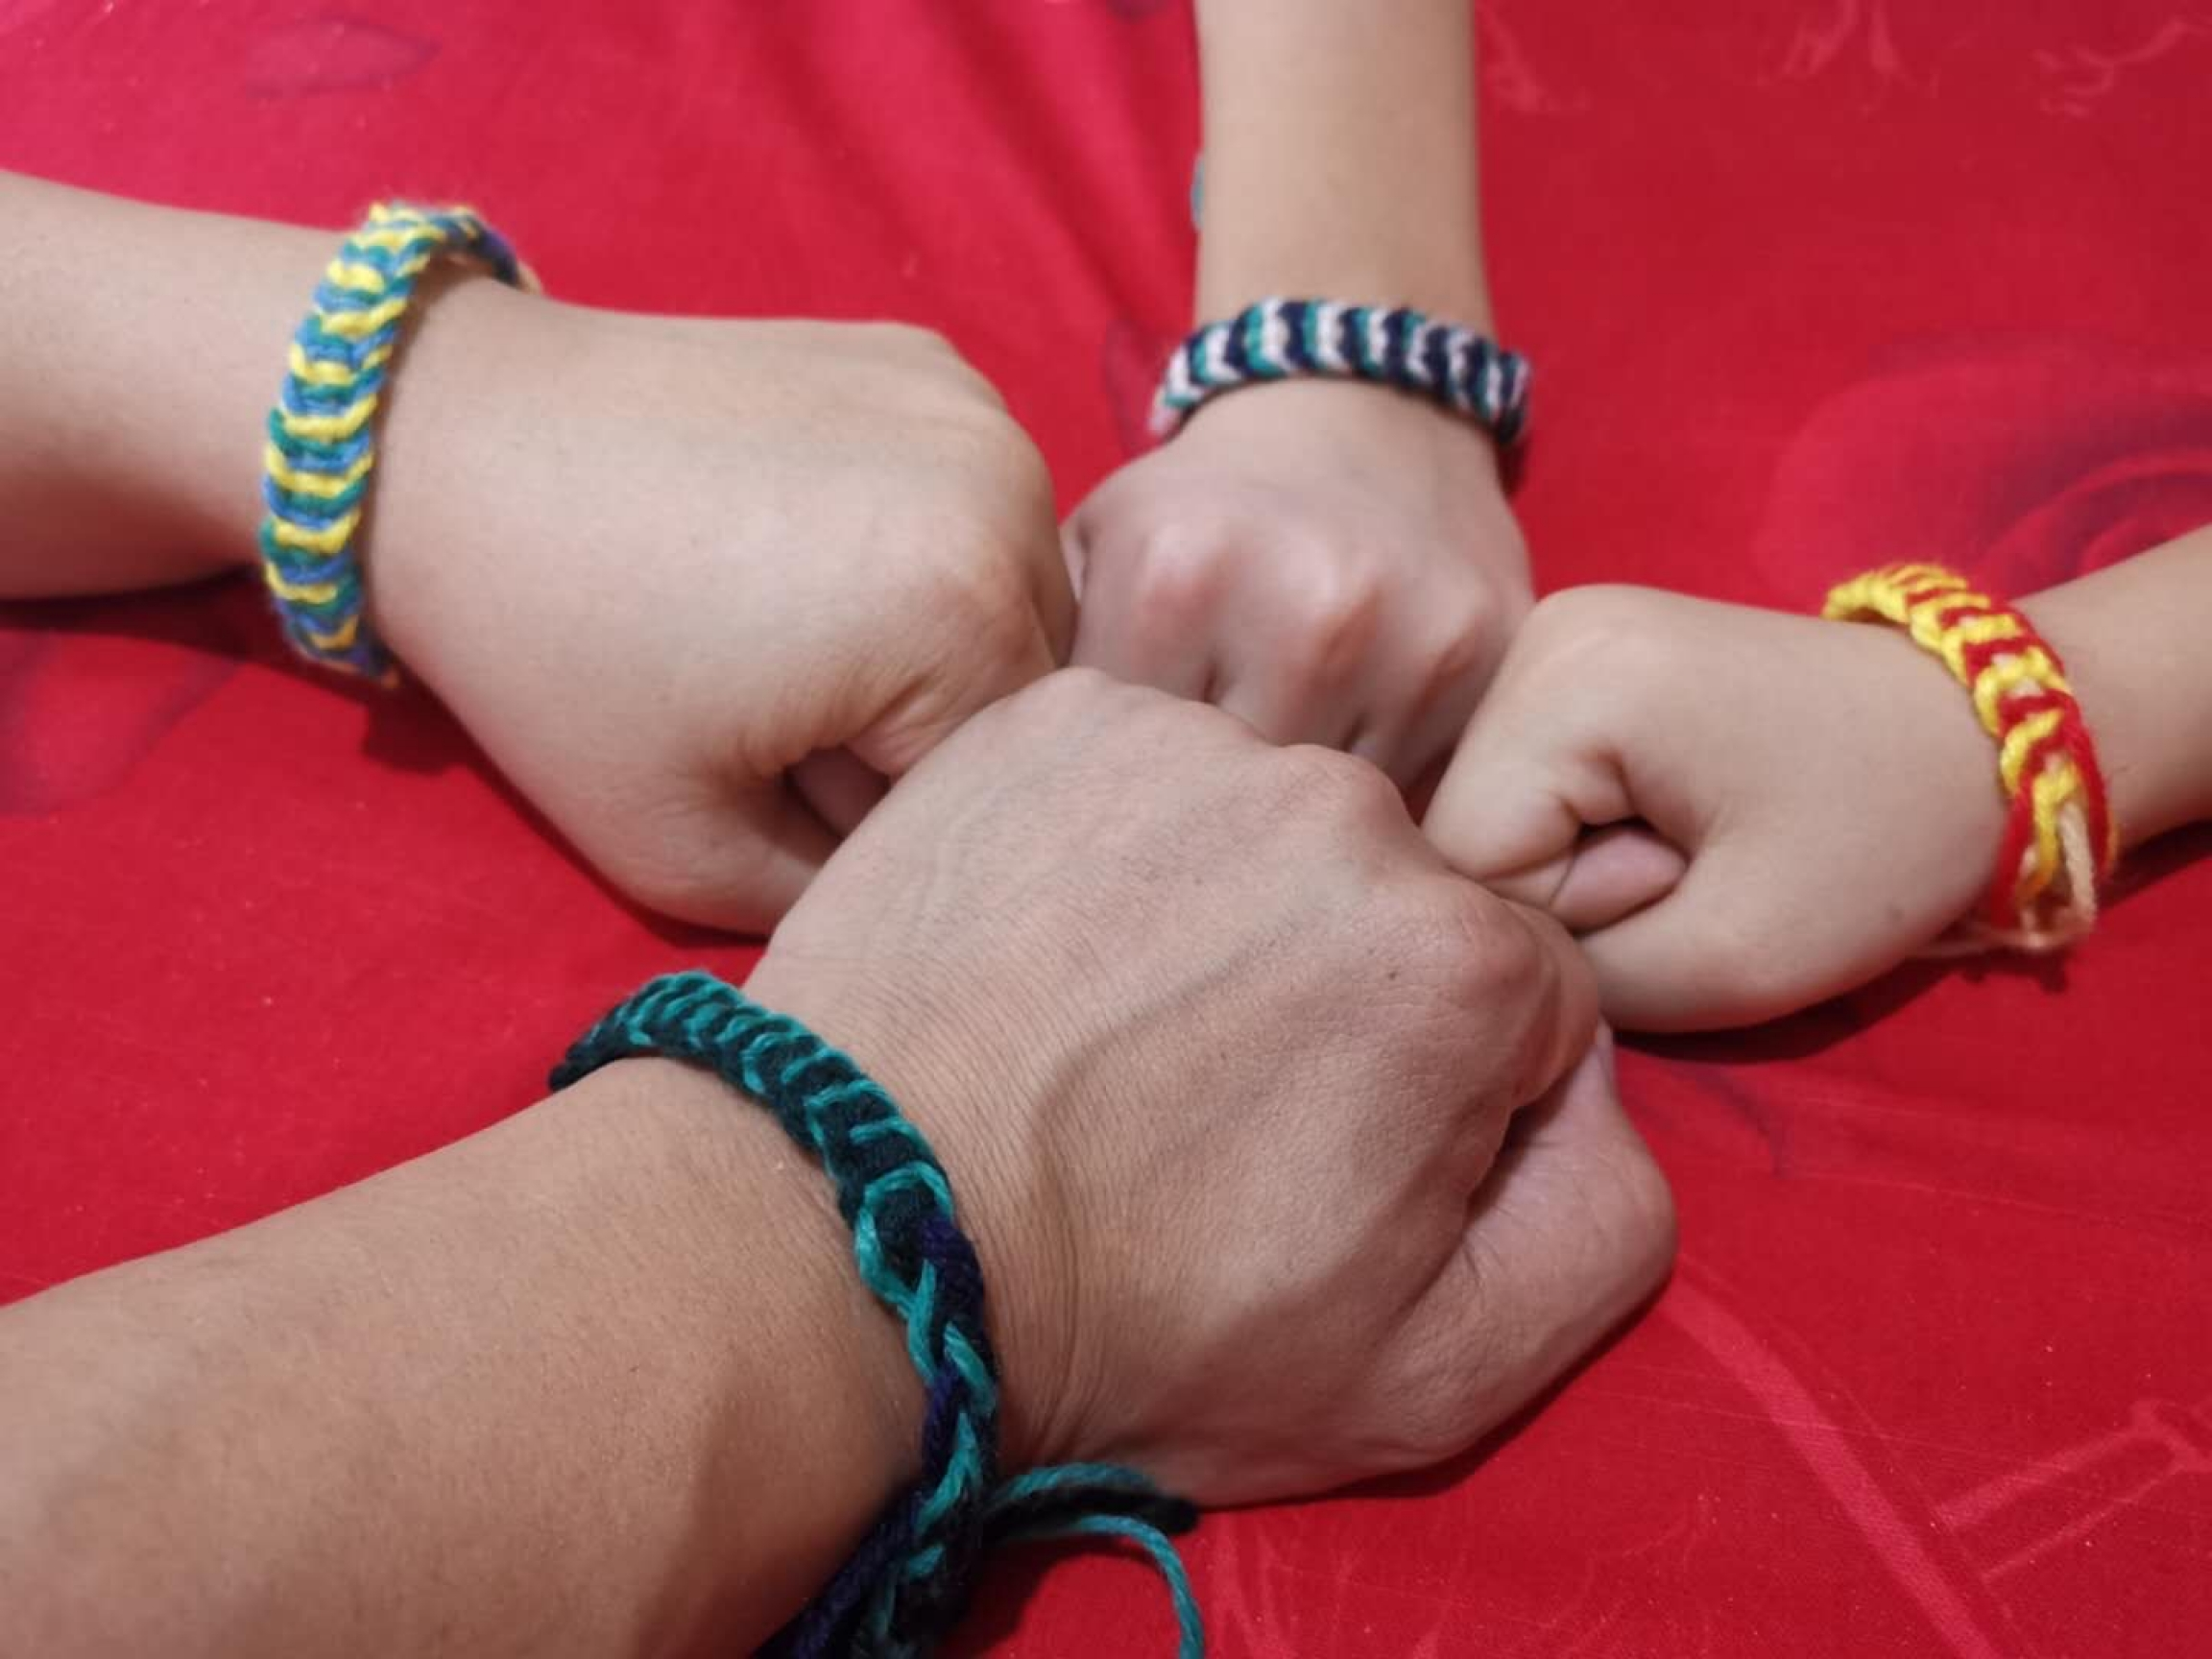 Four arms fist bump to show off their bracelets on their wrists.